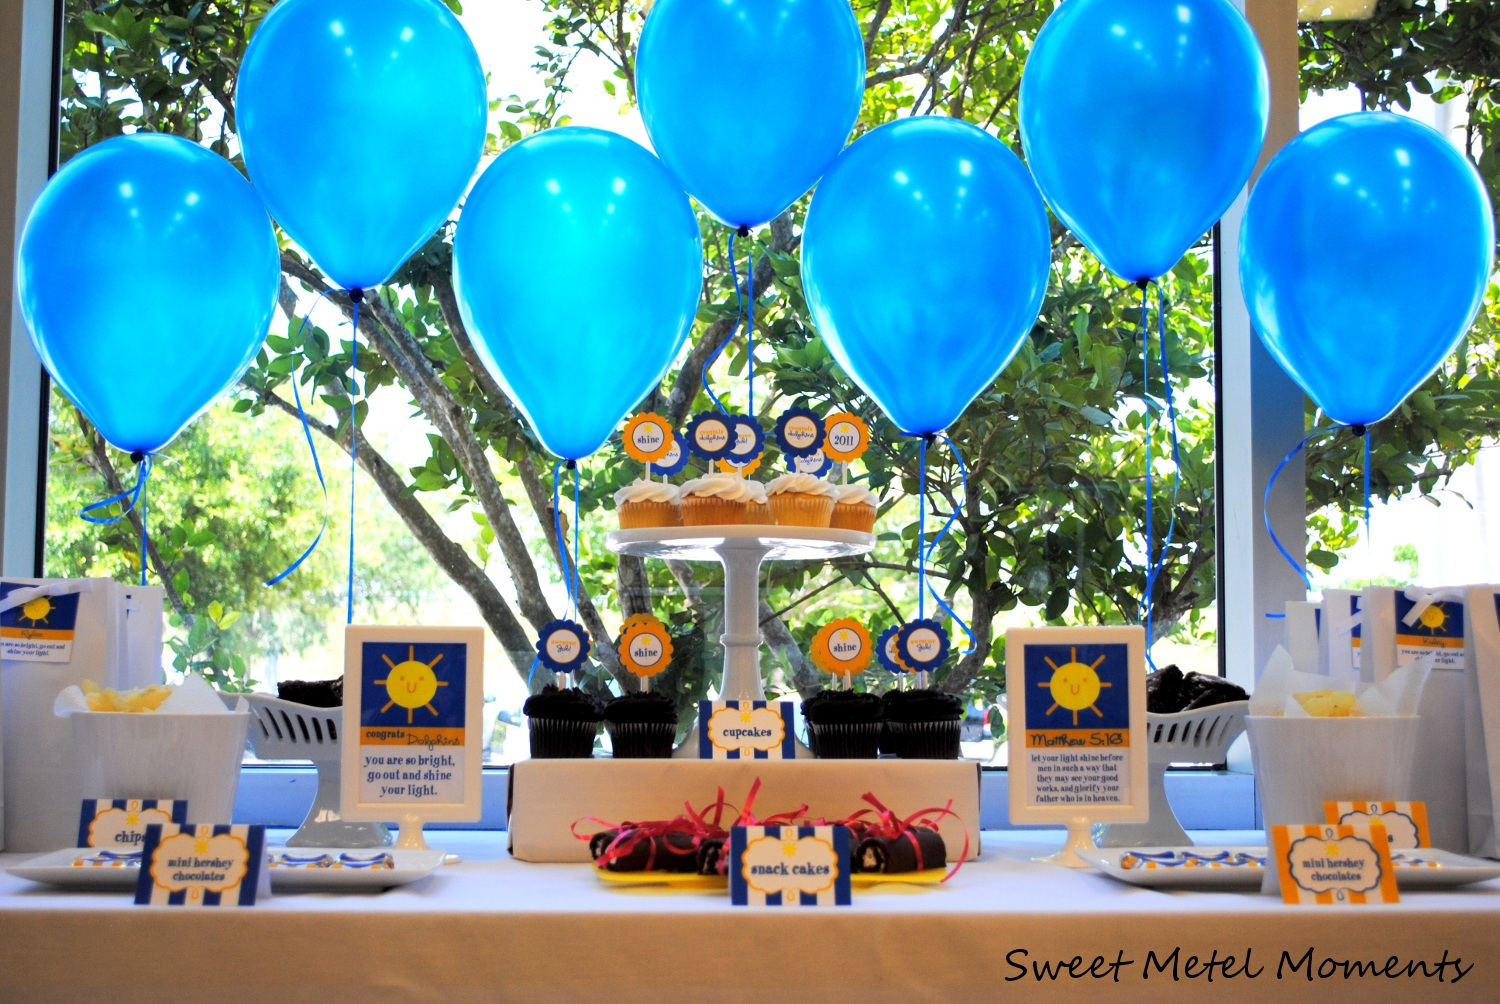 Sweet metel moments brody 39 s preschool graduation party free printable - Kindergarten graduation decorations ...